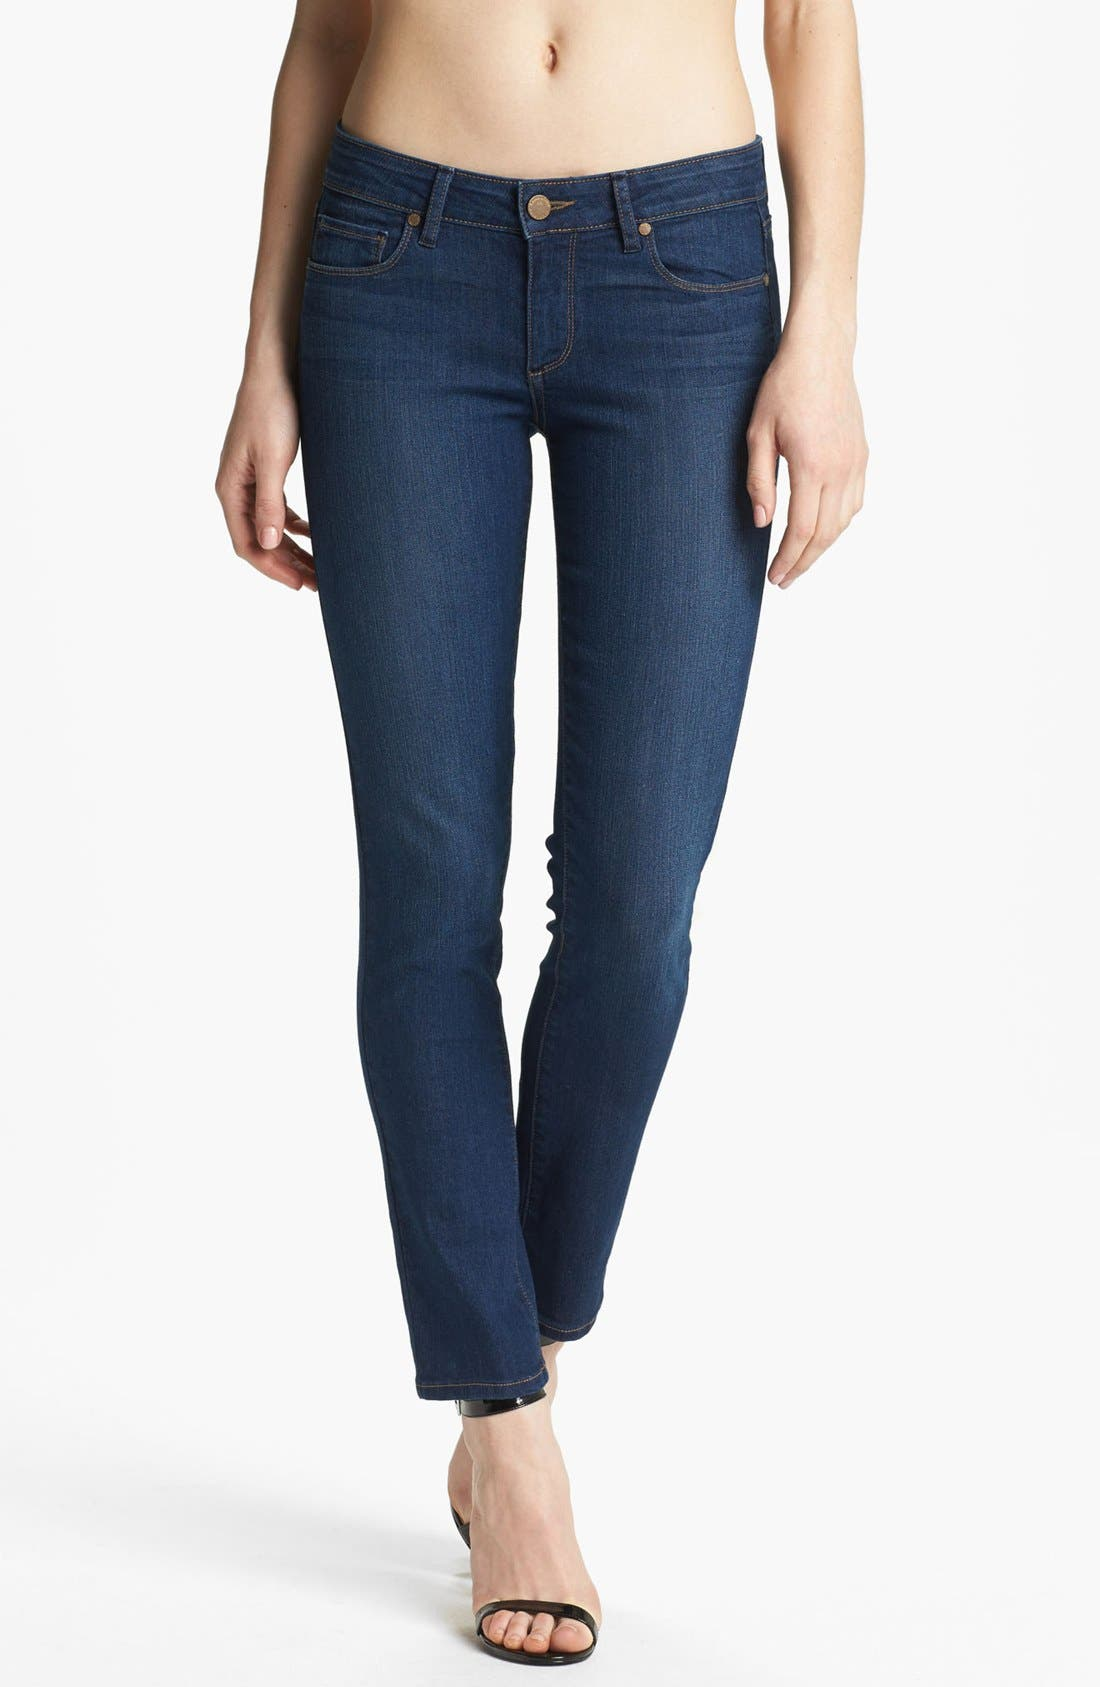 Alternate Image 1 Selected - Paige Denim 'Skyline' Ankle Jeans (Libby)